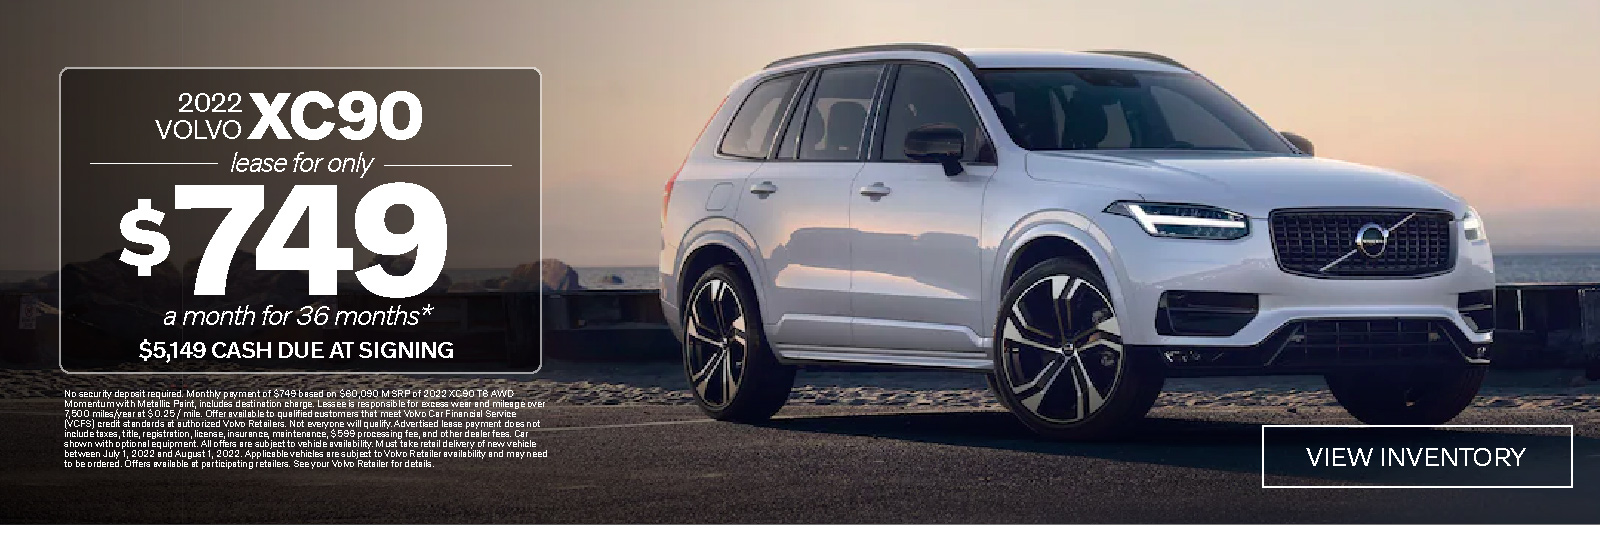 Holiday Safely. New 2021 Volvo XC90 T5 FWD Momentum. Lease for Only $529 a month for 36 months* $4929 due at signing. View Inventory. *No security deposit required. Monthly payment of $529 based on $51,390 MSRP of 2021 XC90 T5 FWD Momentum with Heated Front Seats, Heated Steering Wheel and Metallic Paint, includes destination charge and application of $2,000 Lease Bonus. Lessee is responsible for excess wear and mileage over 10,000 miles/year at $0.25 / mile. Advertised lease payment does not include taxes, title, registration, license, acquisition fee, insurance, maintenance, and $599 processing fees. Car shown with optional equipment. All offers are subject to vehicle availability. Must take delivery of new vehicle between December 1, 2020 and January 4, 2021.